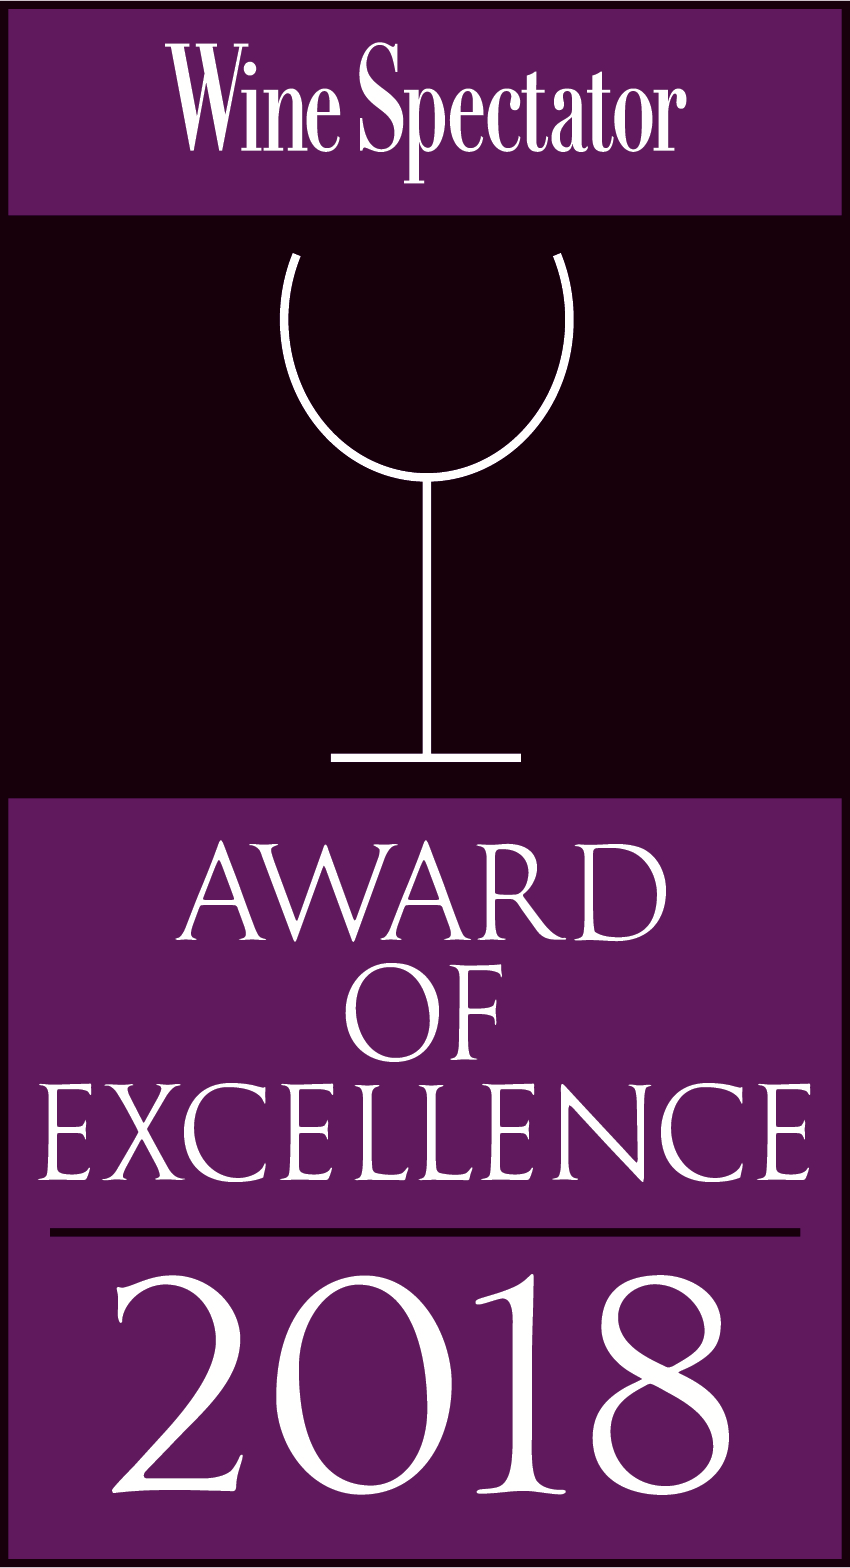 Wine Spectator award 2018.png